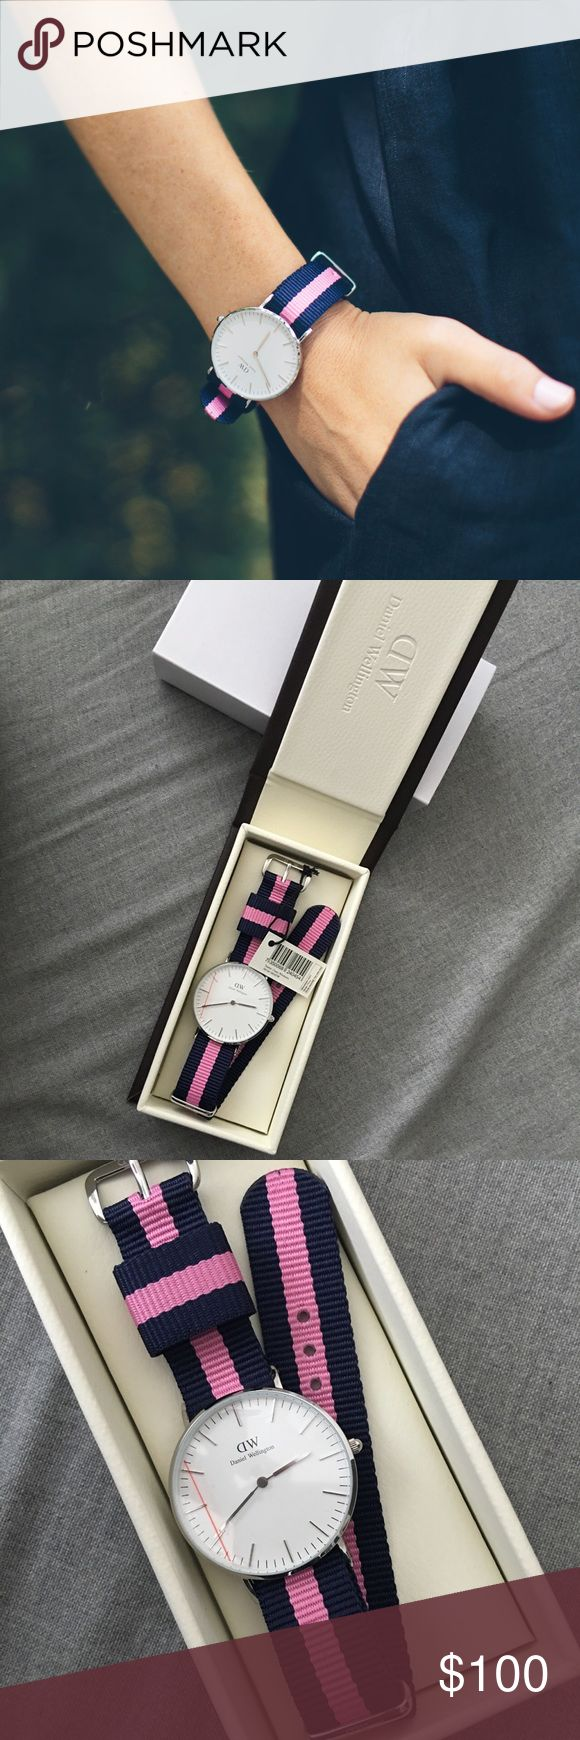 Daniel Wellington ladies watch -classic Winchester Daniel Wellington ladies watch - classic Winchester in navy & pink with silver detail. Brand new! Retails $175 Daniel Wellington Jewelry